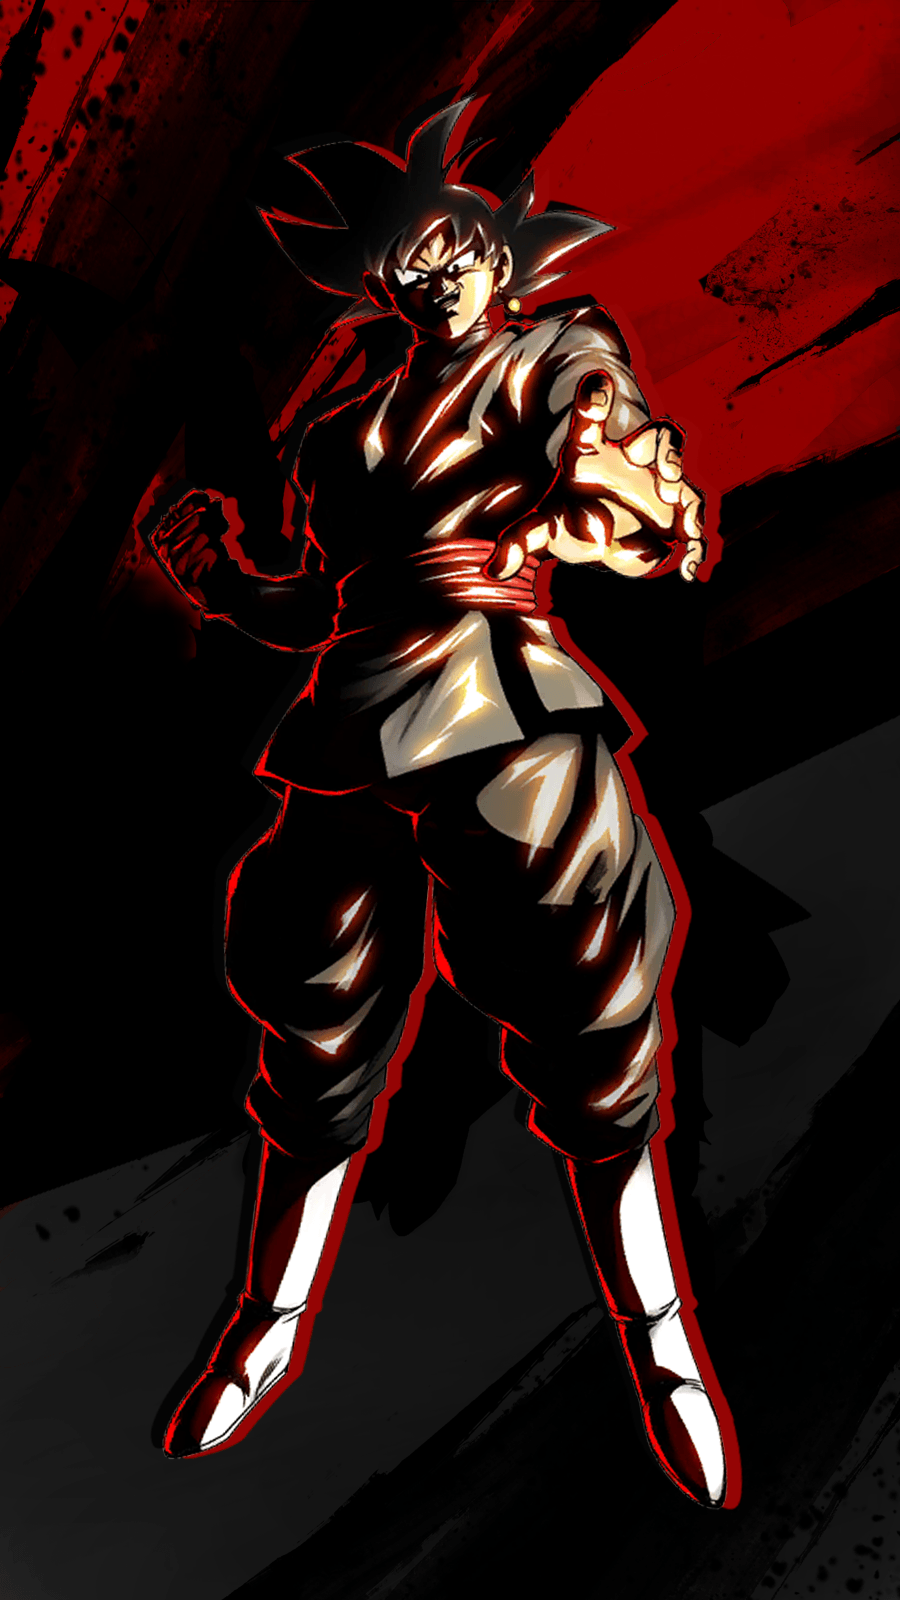 900x1600 Since you guys liked my Gogeta wallpaper, here's background #2 ...